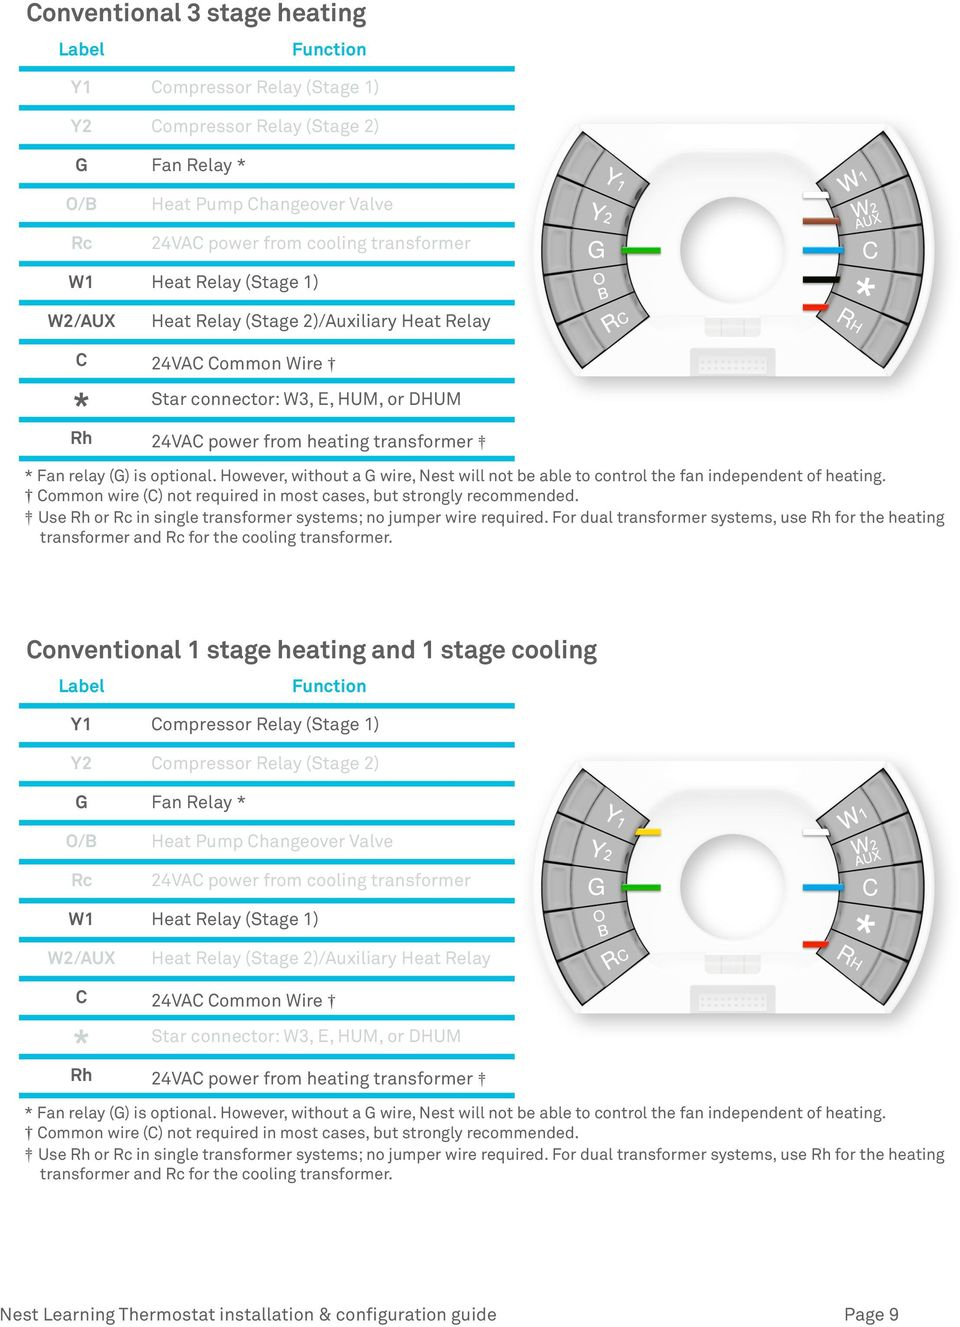 Nest Learning Thermostat Pro Installation & Configuration Guide - Pdf - Nest Wiring Diagram C